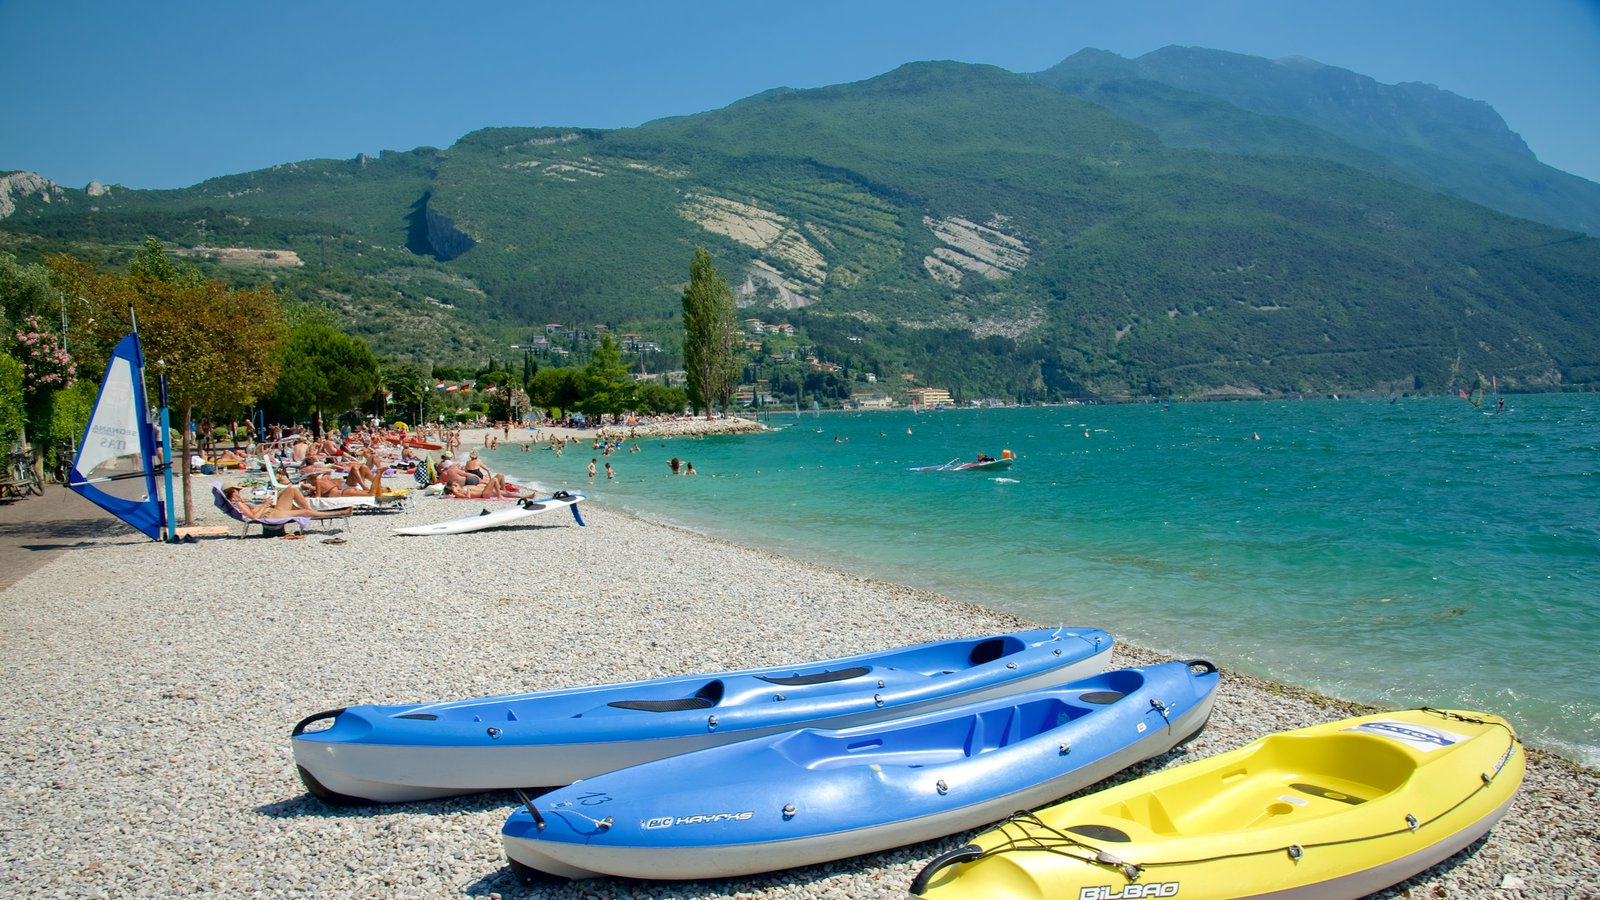 Nago-Torbole showing a pebble beach, general coastal views and kayaking or canoeing